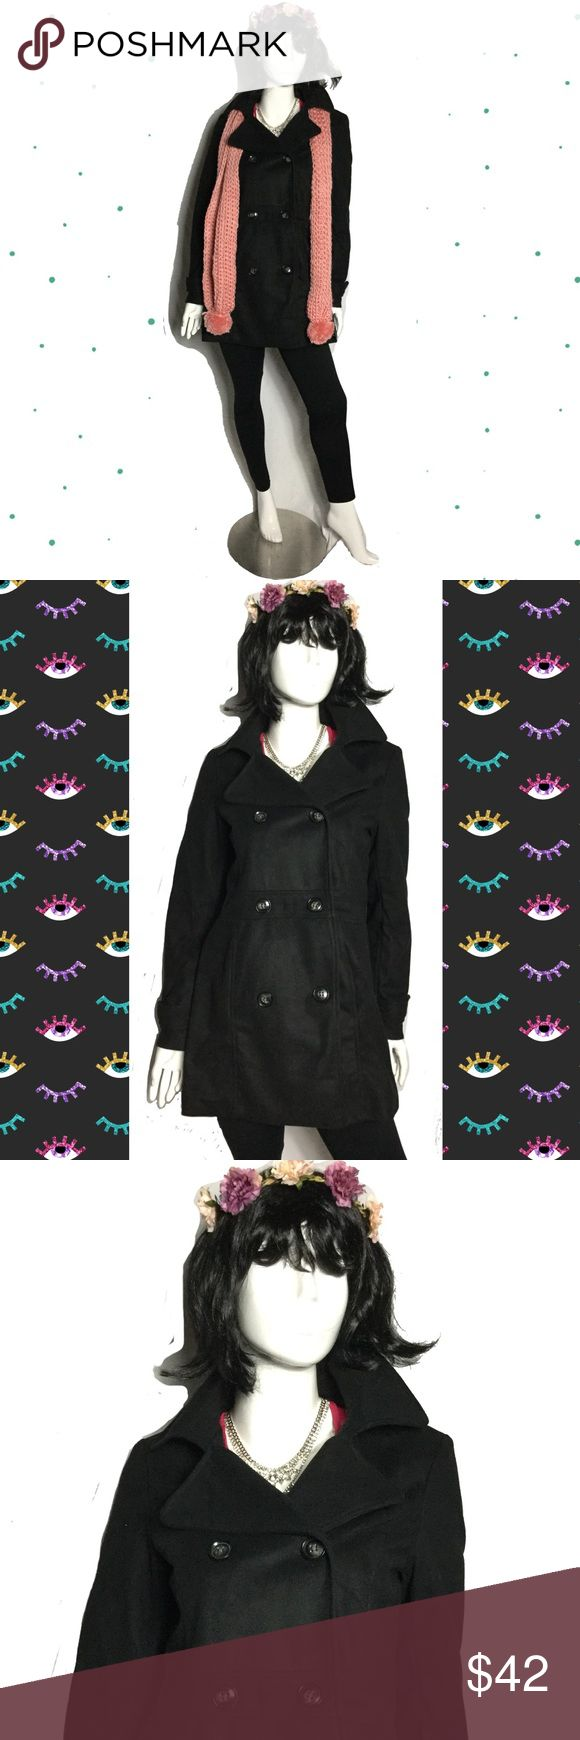 "Black Pea Coat sz XL nwot Black peacoat sz XL nwot Brand: Shop The Trend, a boutique brand. Brand new item, didn't come with tag. Polyester with polyester shell. Armpit to armpit 20"", length 32. Upper arm 15"". Has side pockets. C.O.C Jackets & Coats Pea Coats"